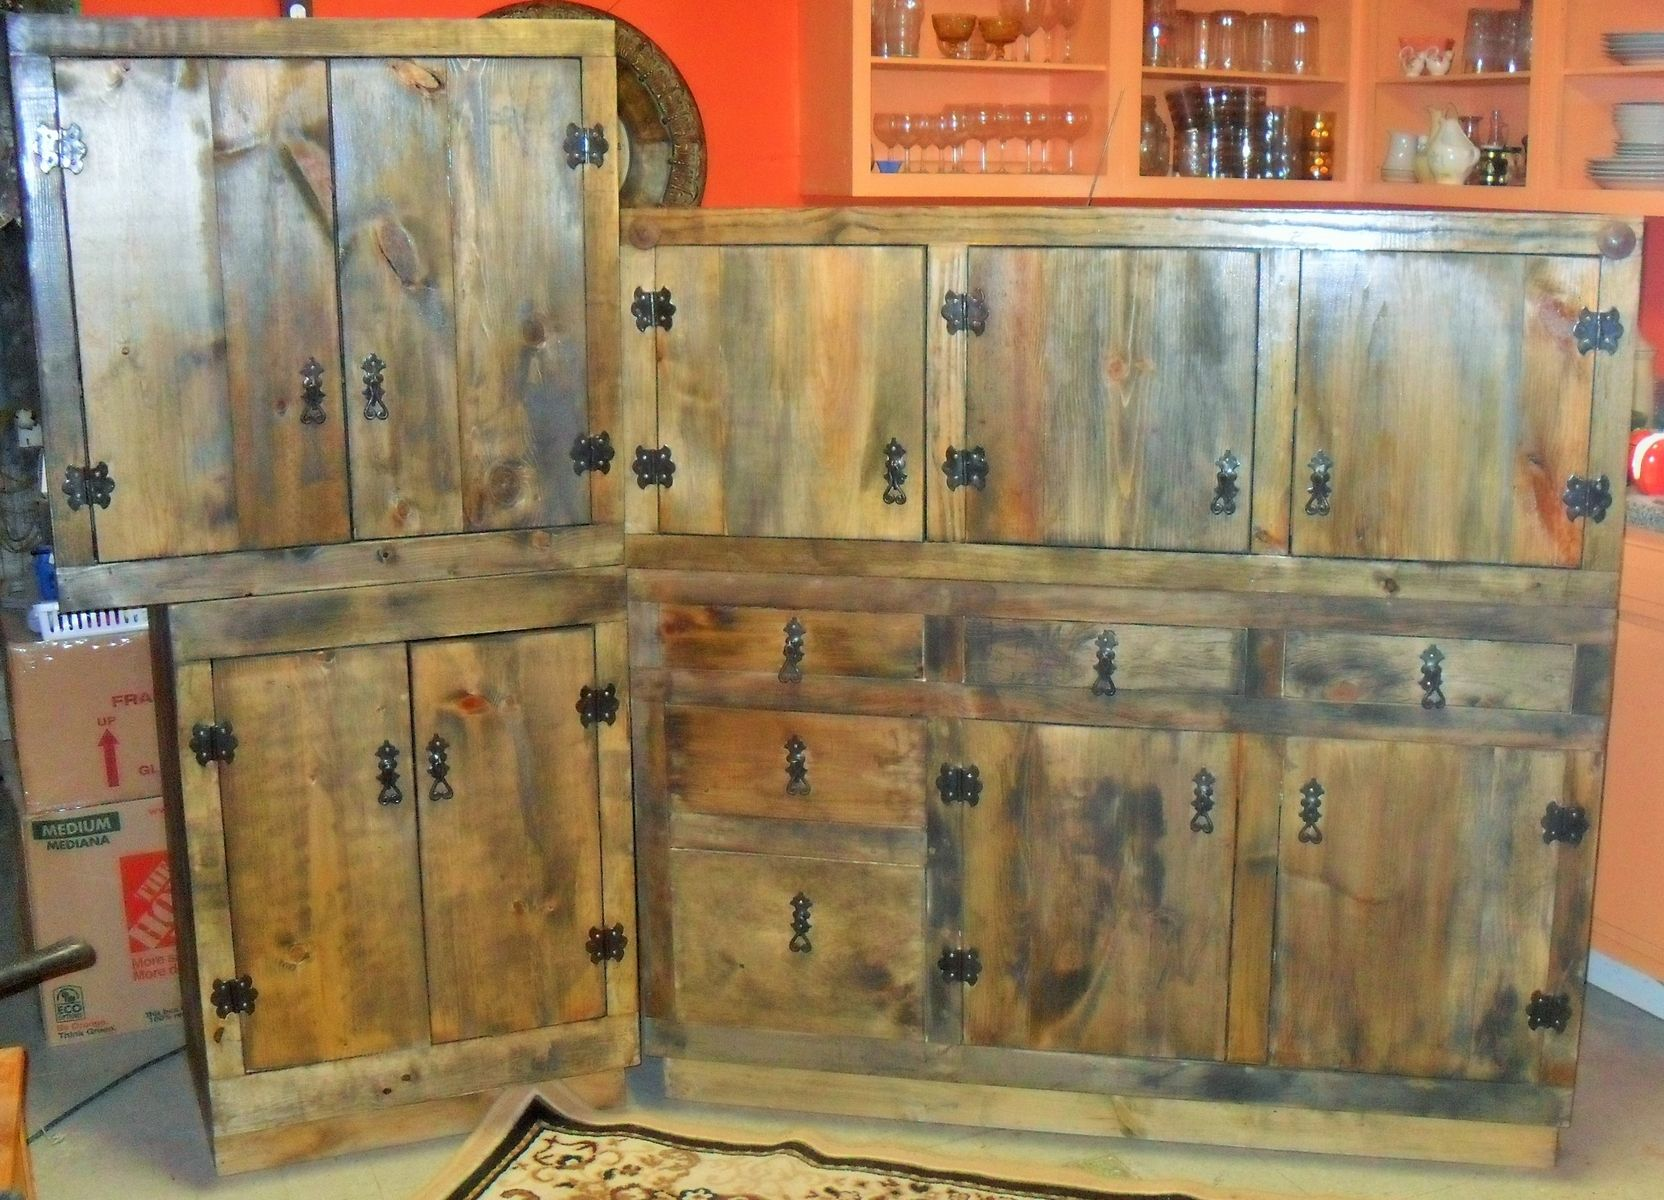 Hand made rustic kitchen cabinets by the bunk house studio - Rustic wooden kitchen cabinet ...